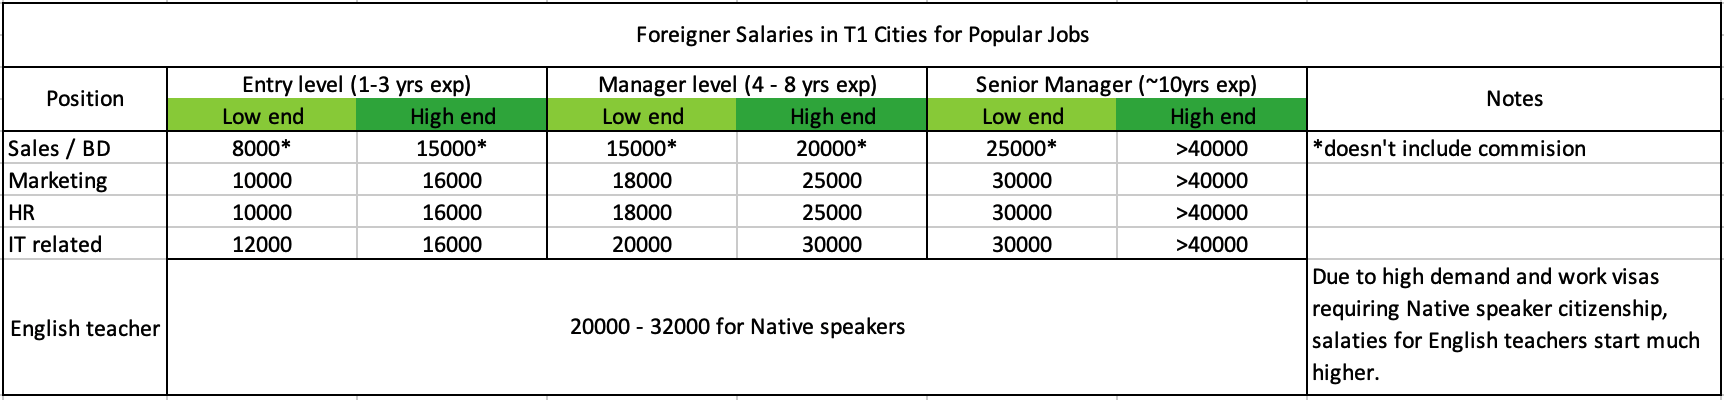 foreigner wages in China T1 Cities